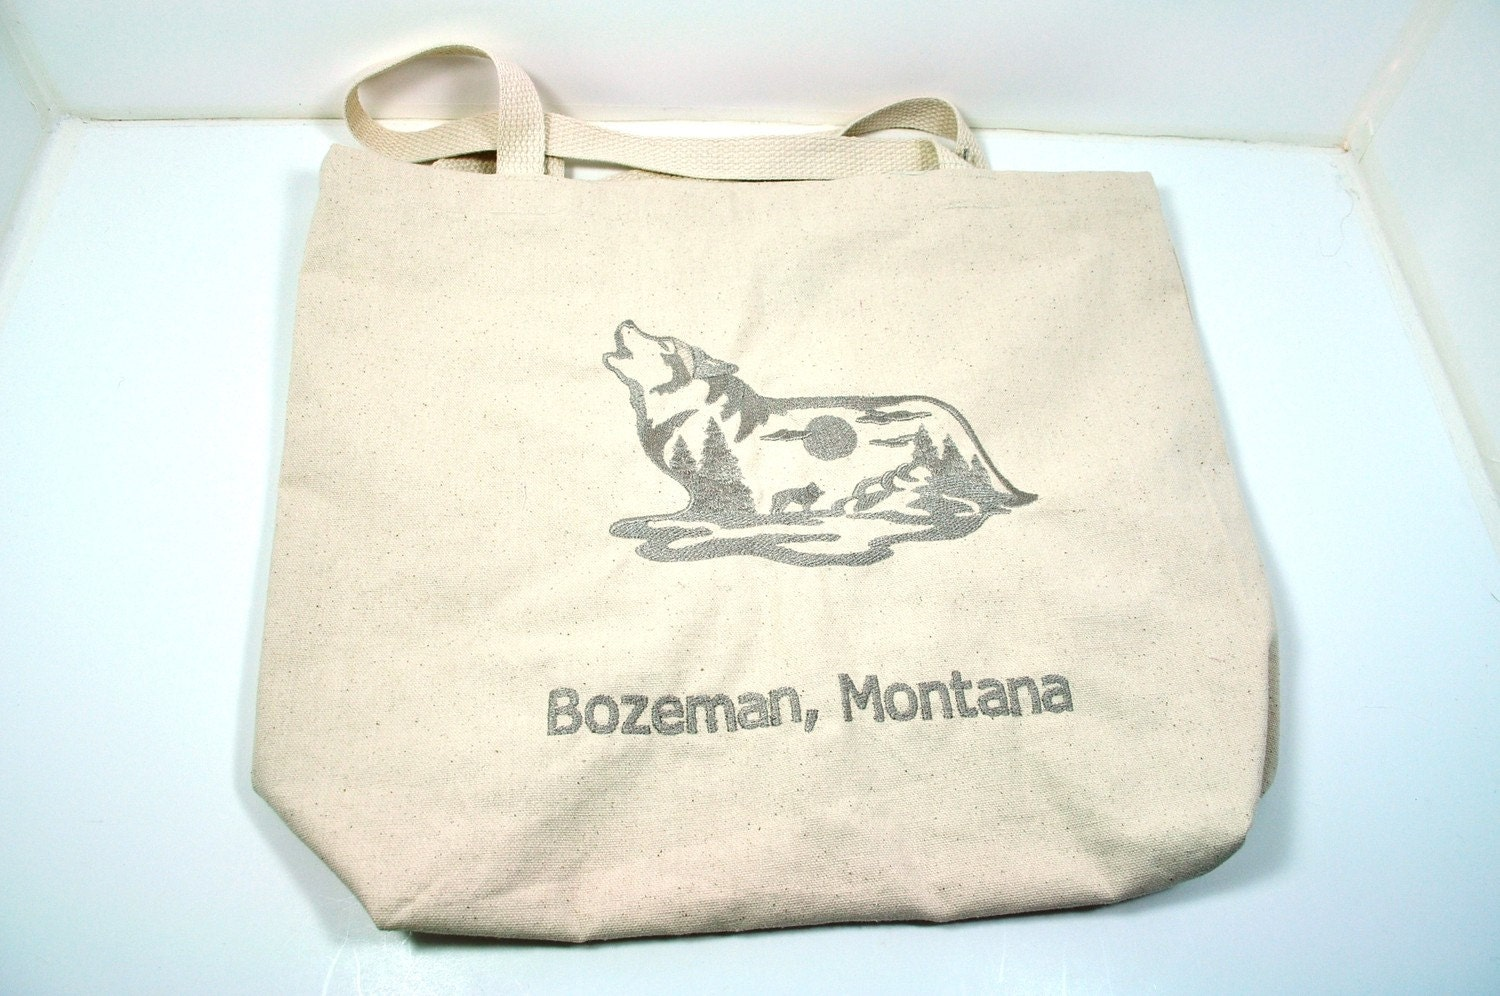 Custom Embroidered Bags, Canvas Tote Bags